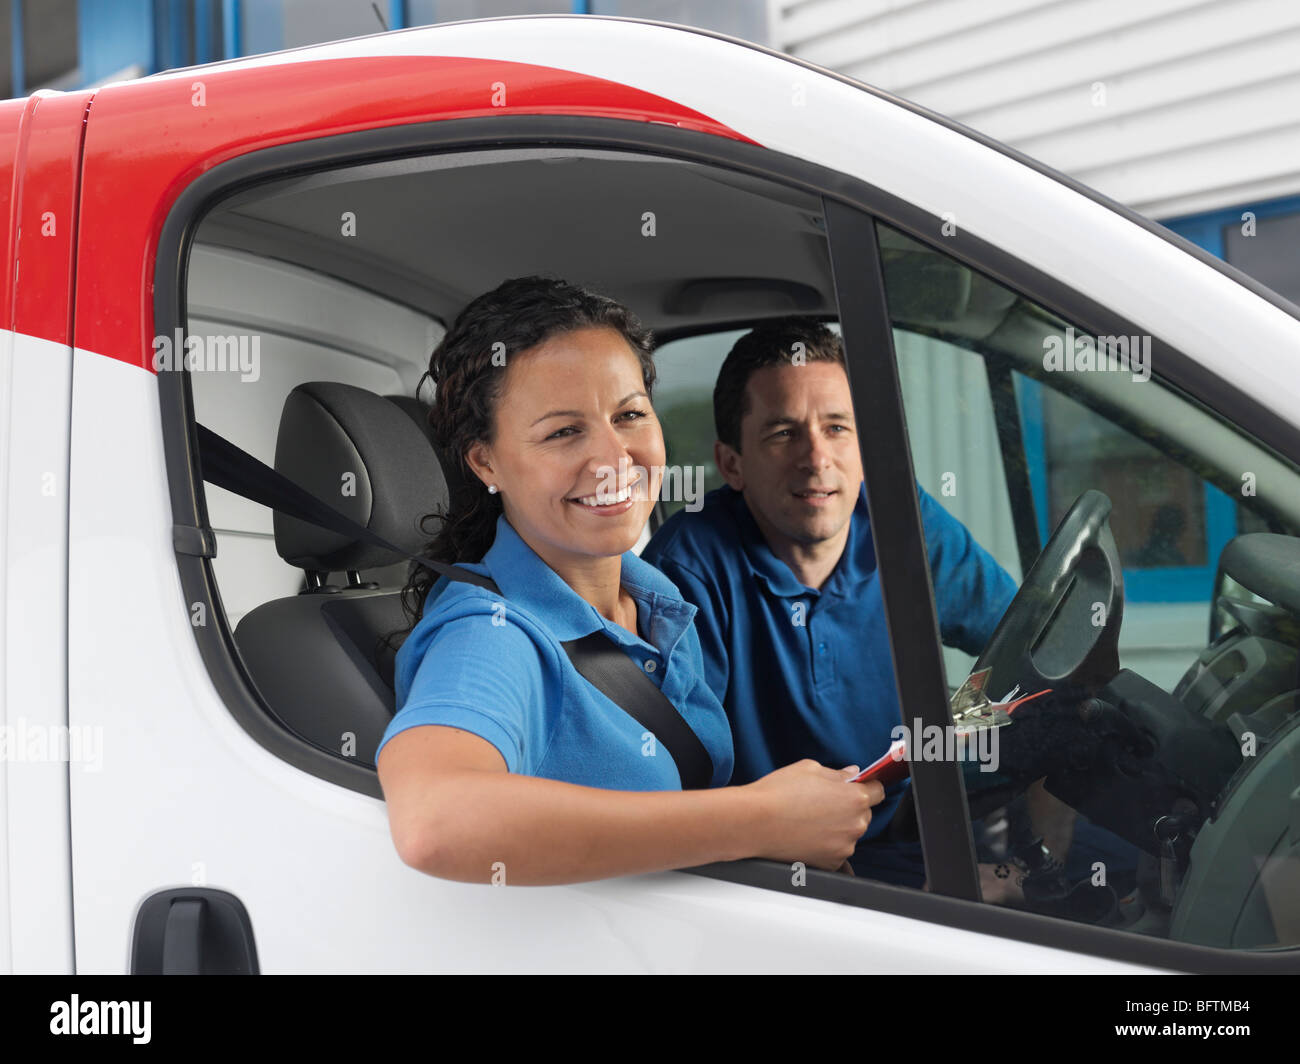 man and woman in delivery van - Stock Image